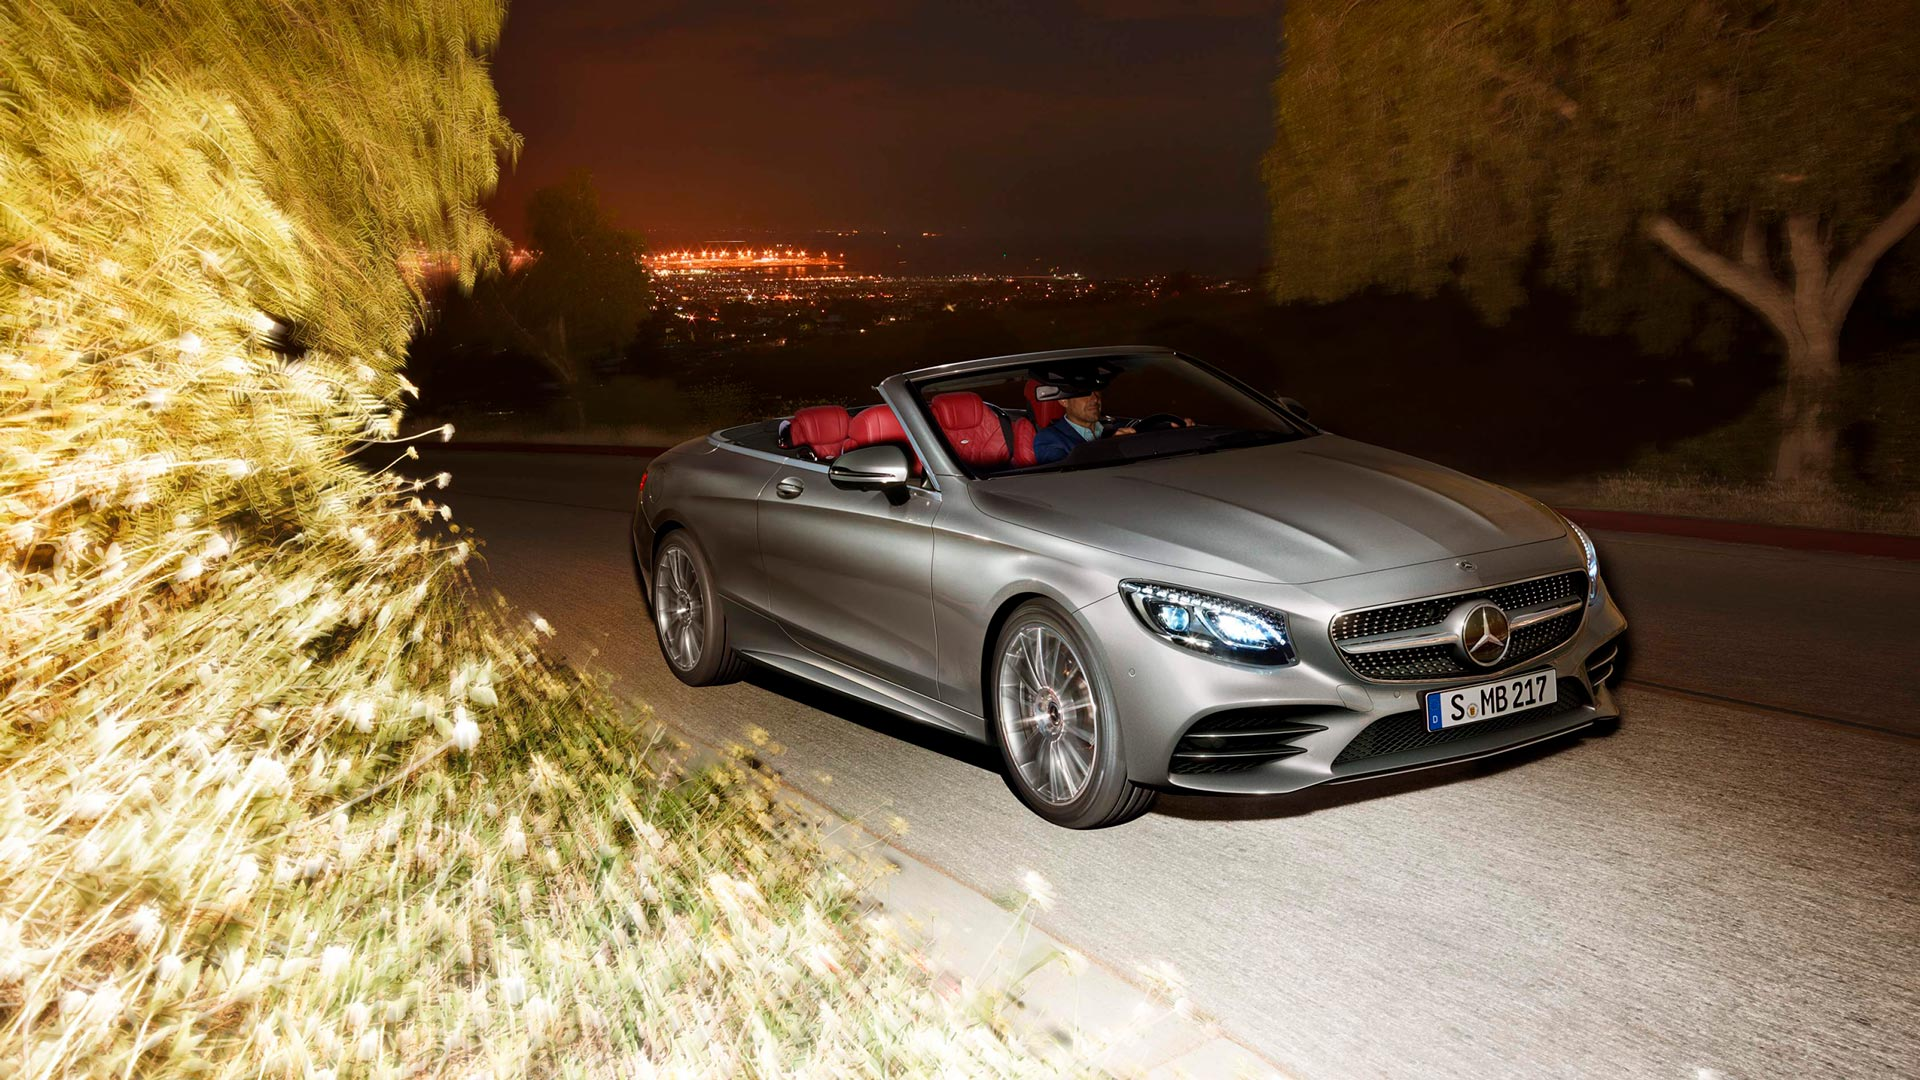 Mercedes-Benz Intelligent Drive Mercedes-Benz S-Class Cabriolet